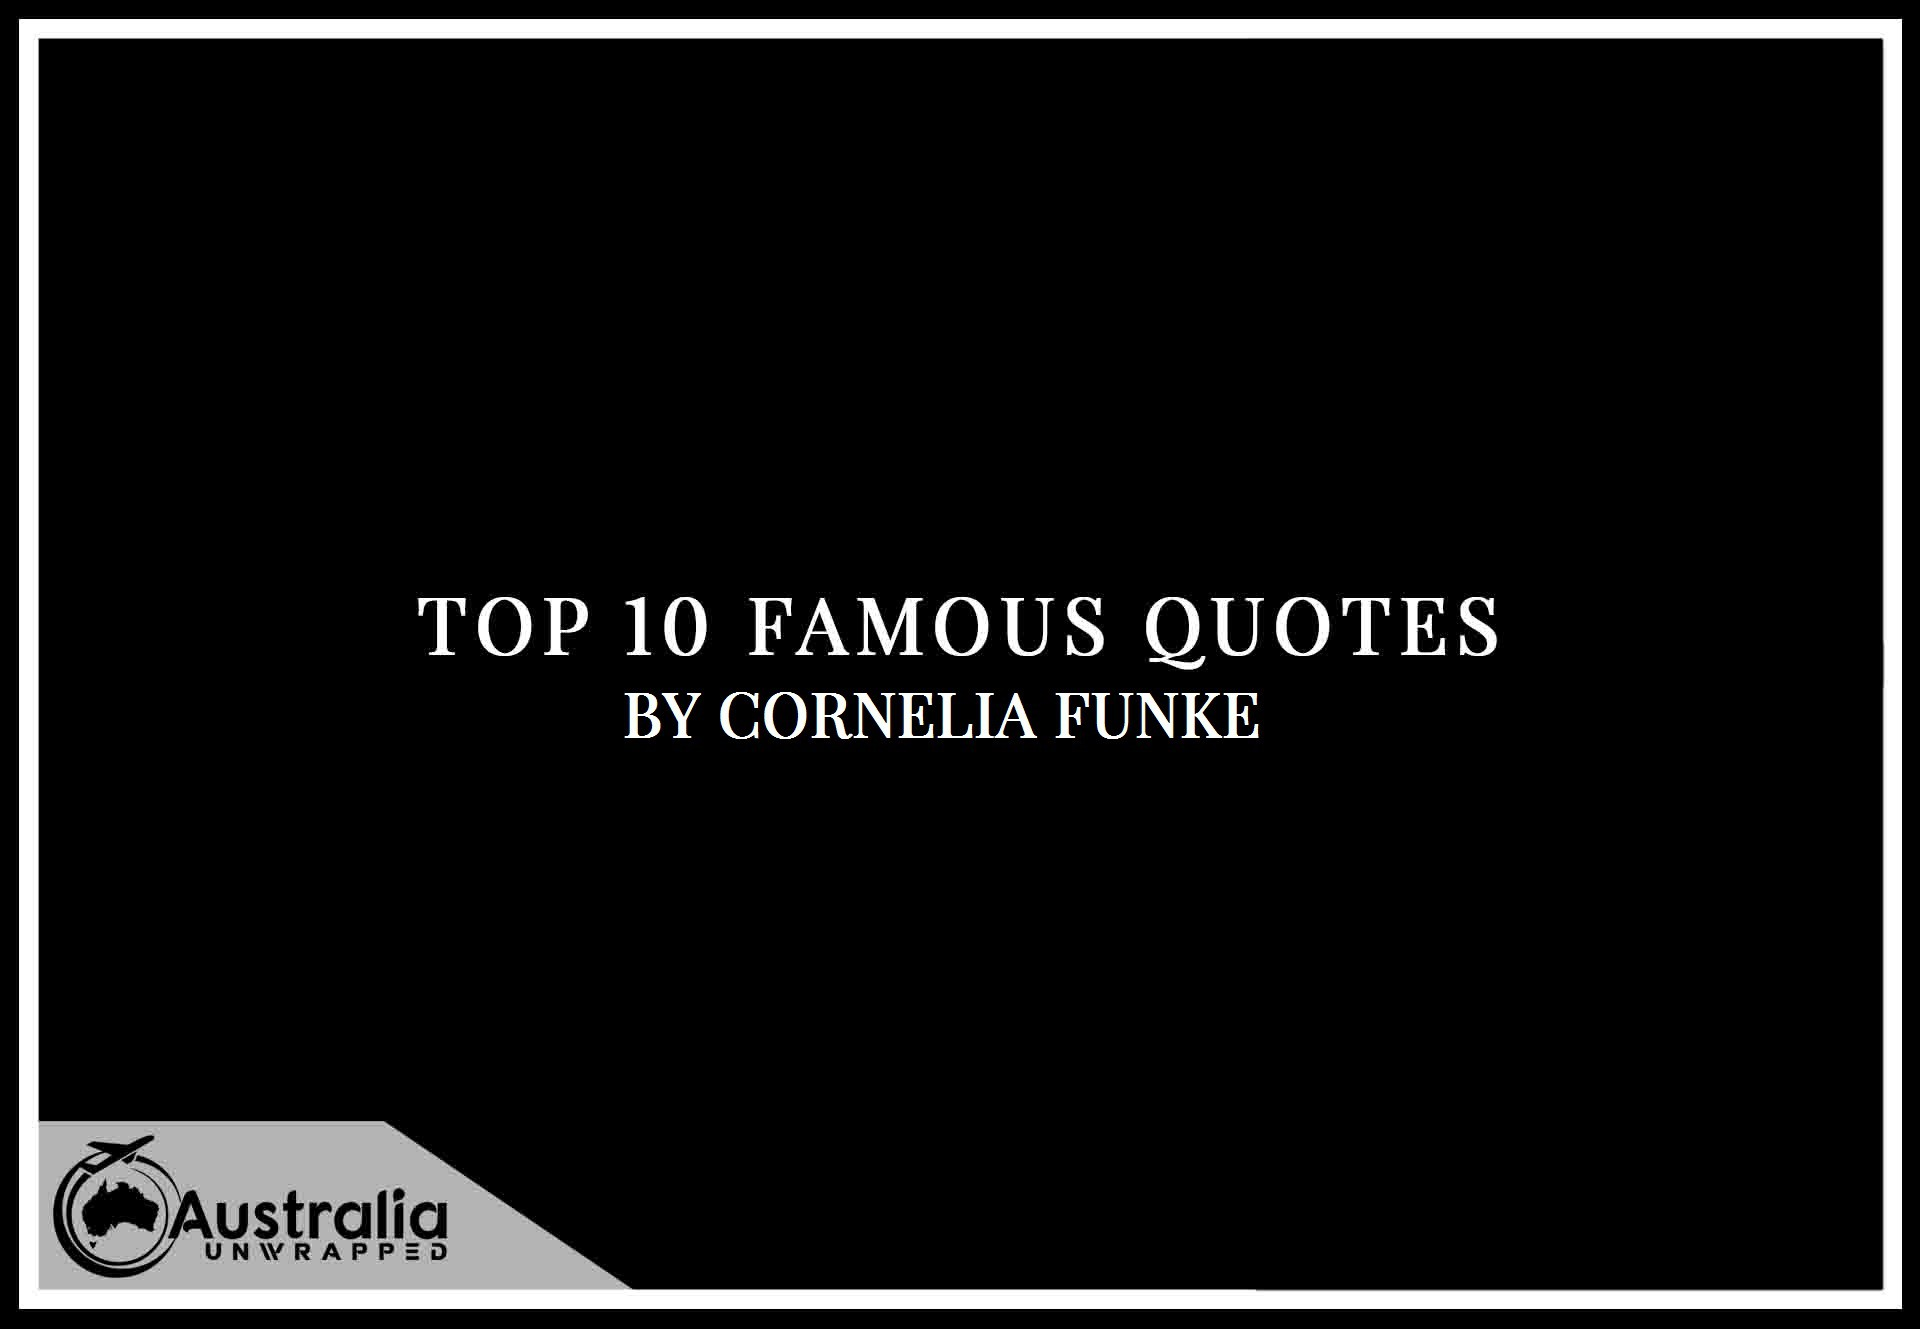 Cornelia Funke's Top 10 Popular and Famous Quotes